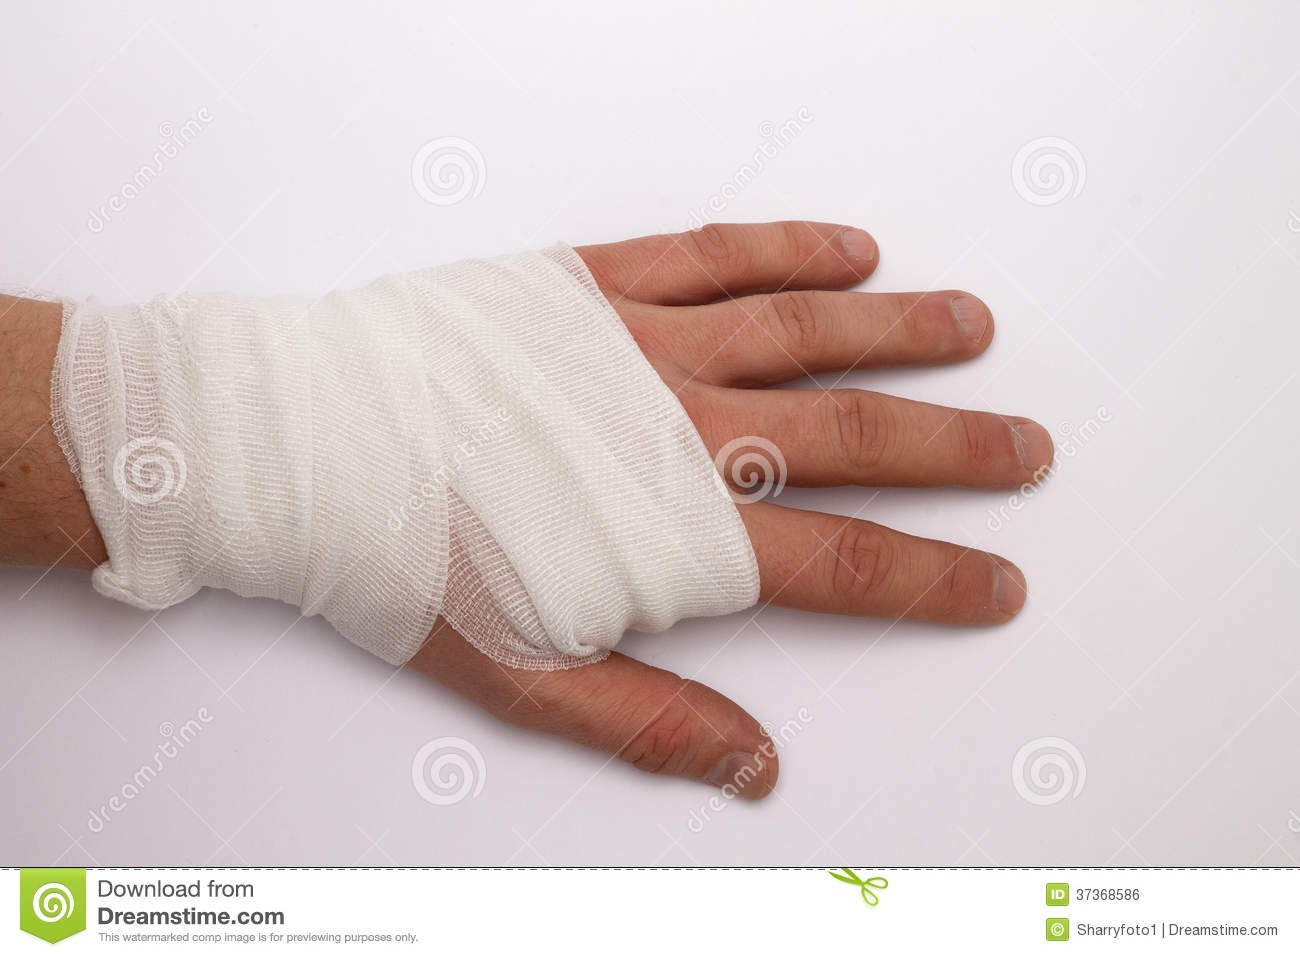 bandaged hand after accident or injury.